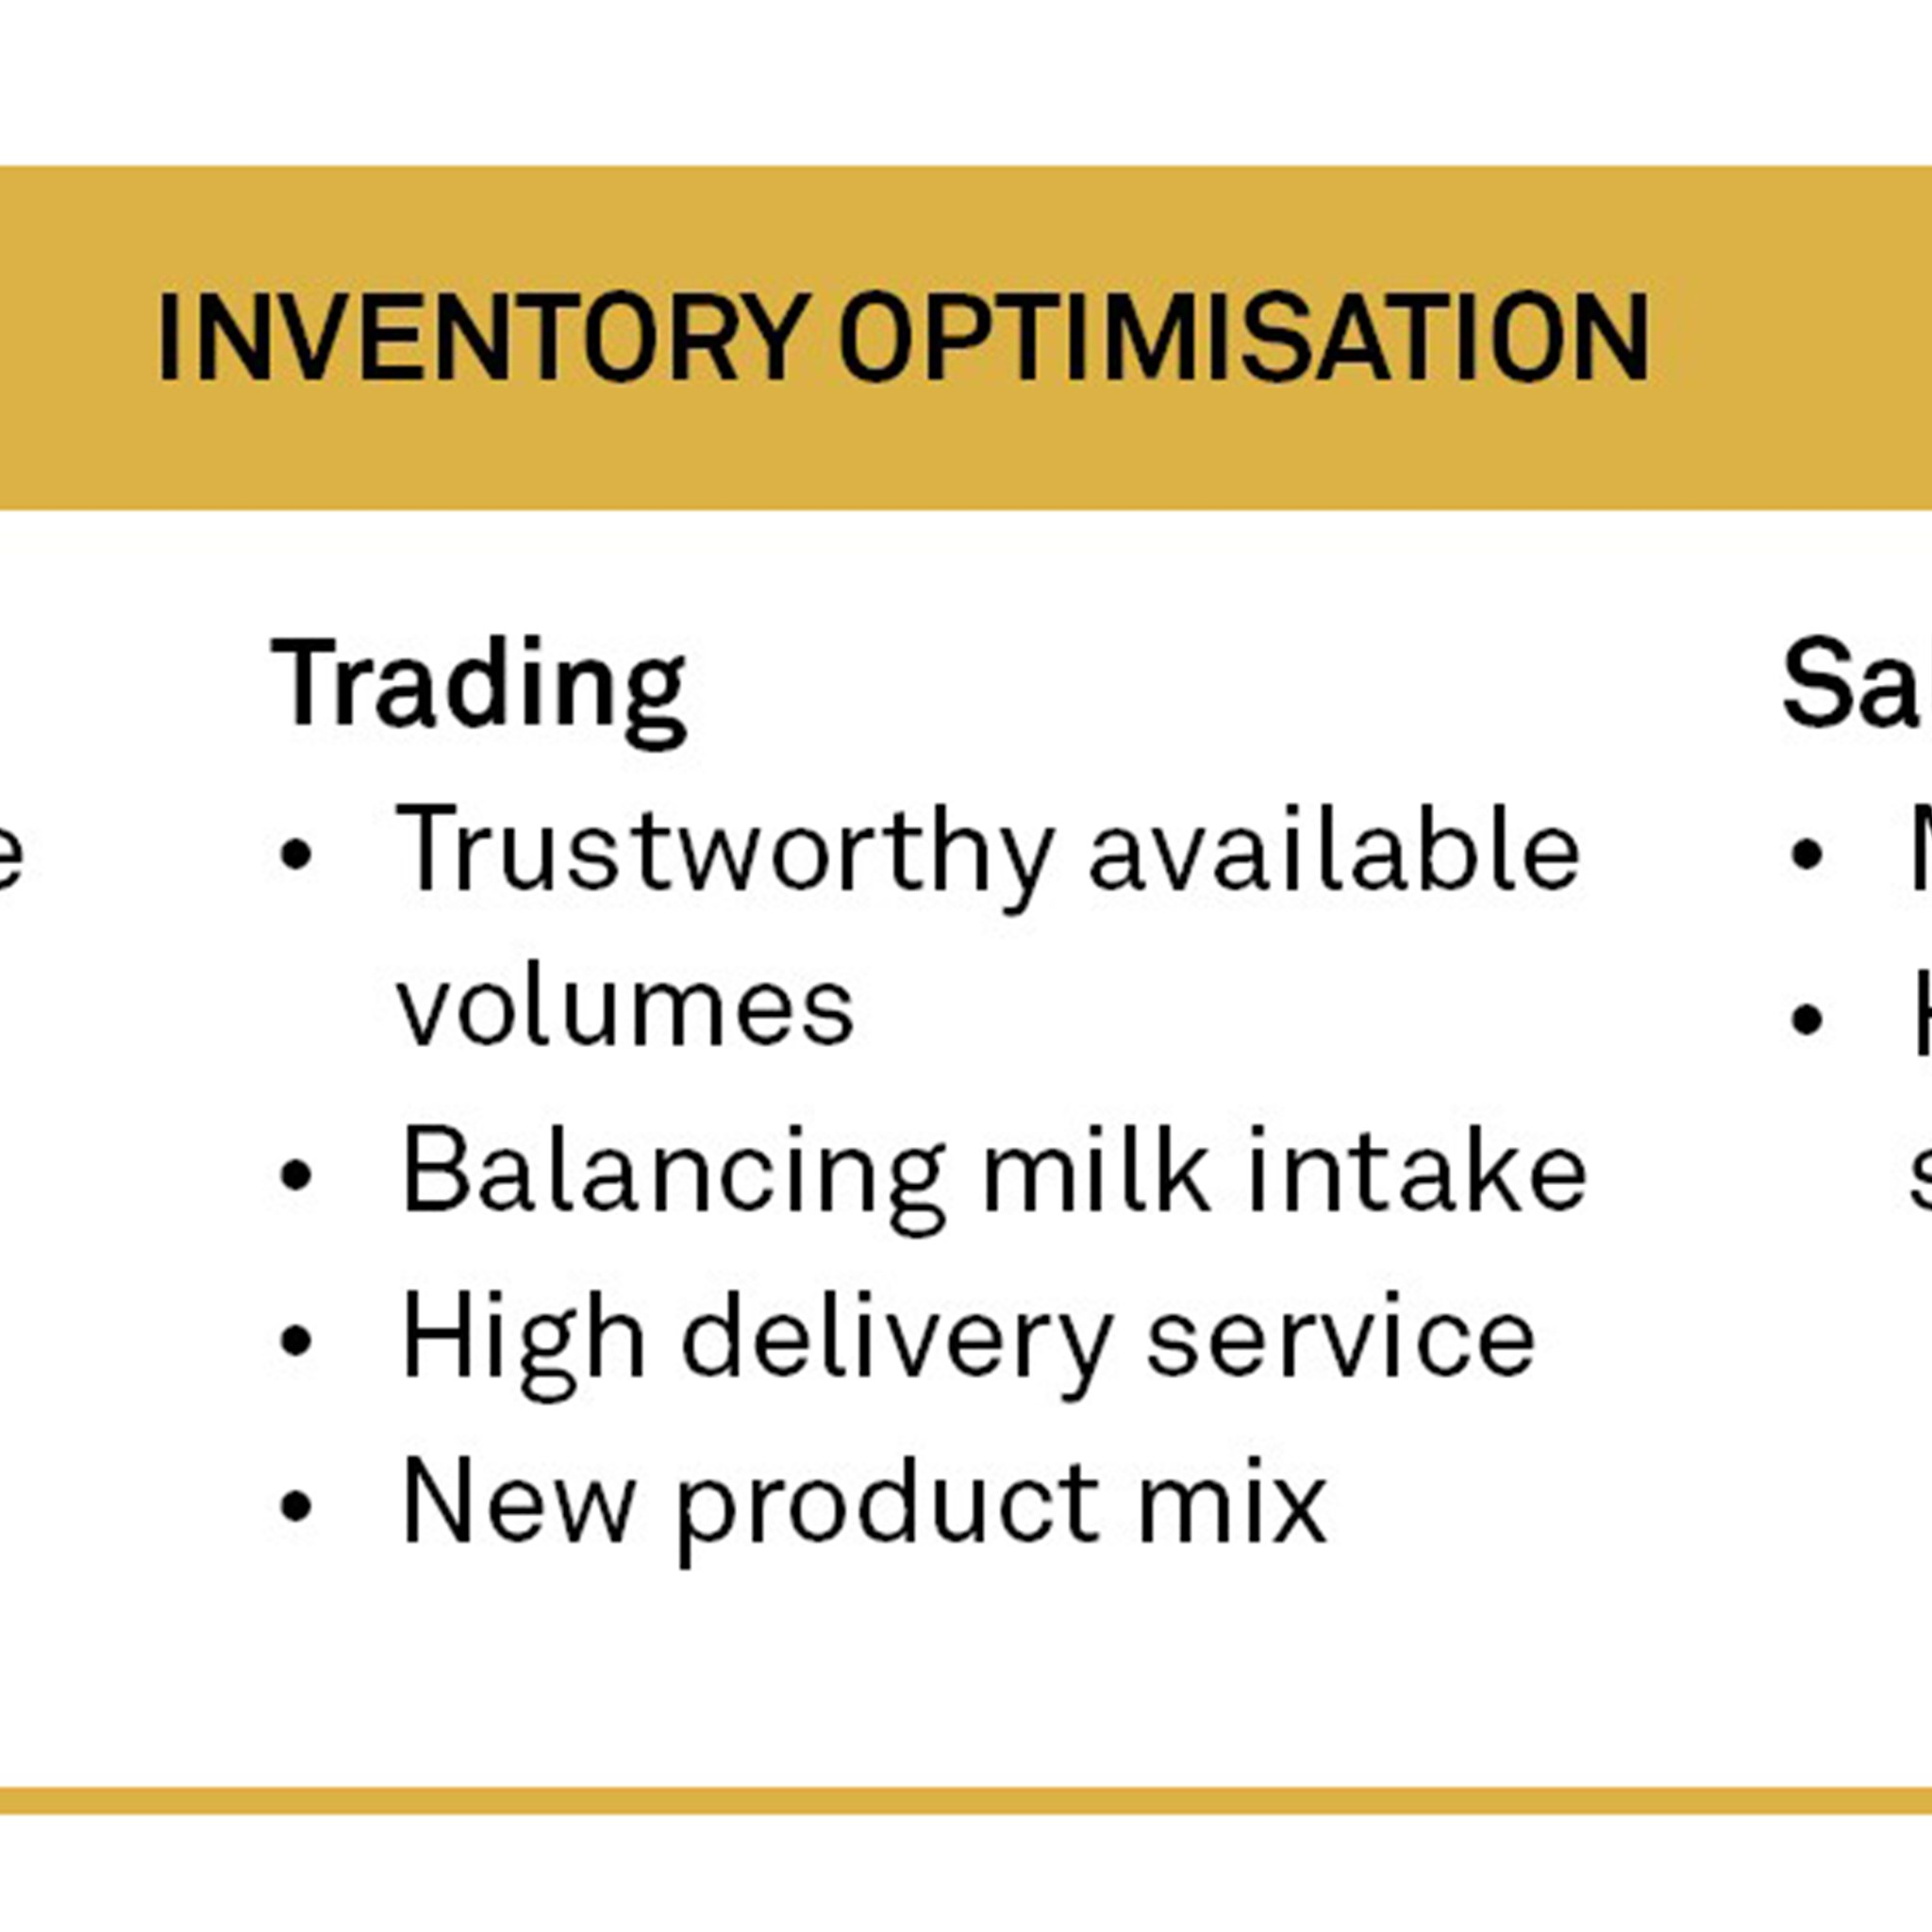 Releasing unnecessary capital in inventory increases the finances available for sustainable investments